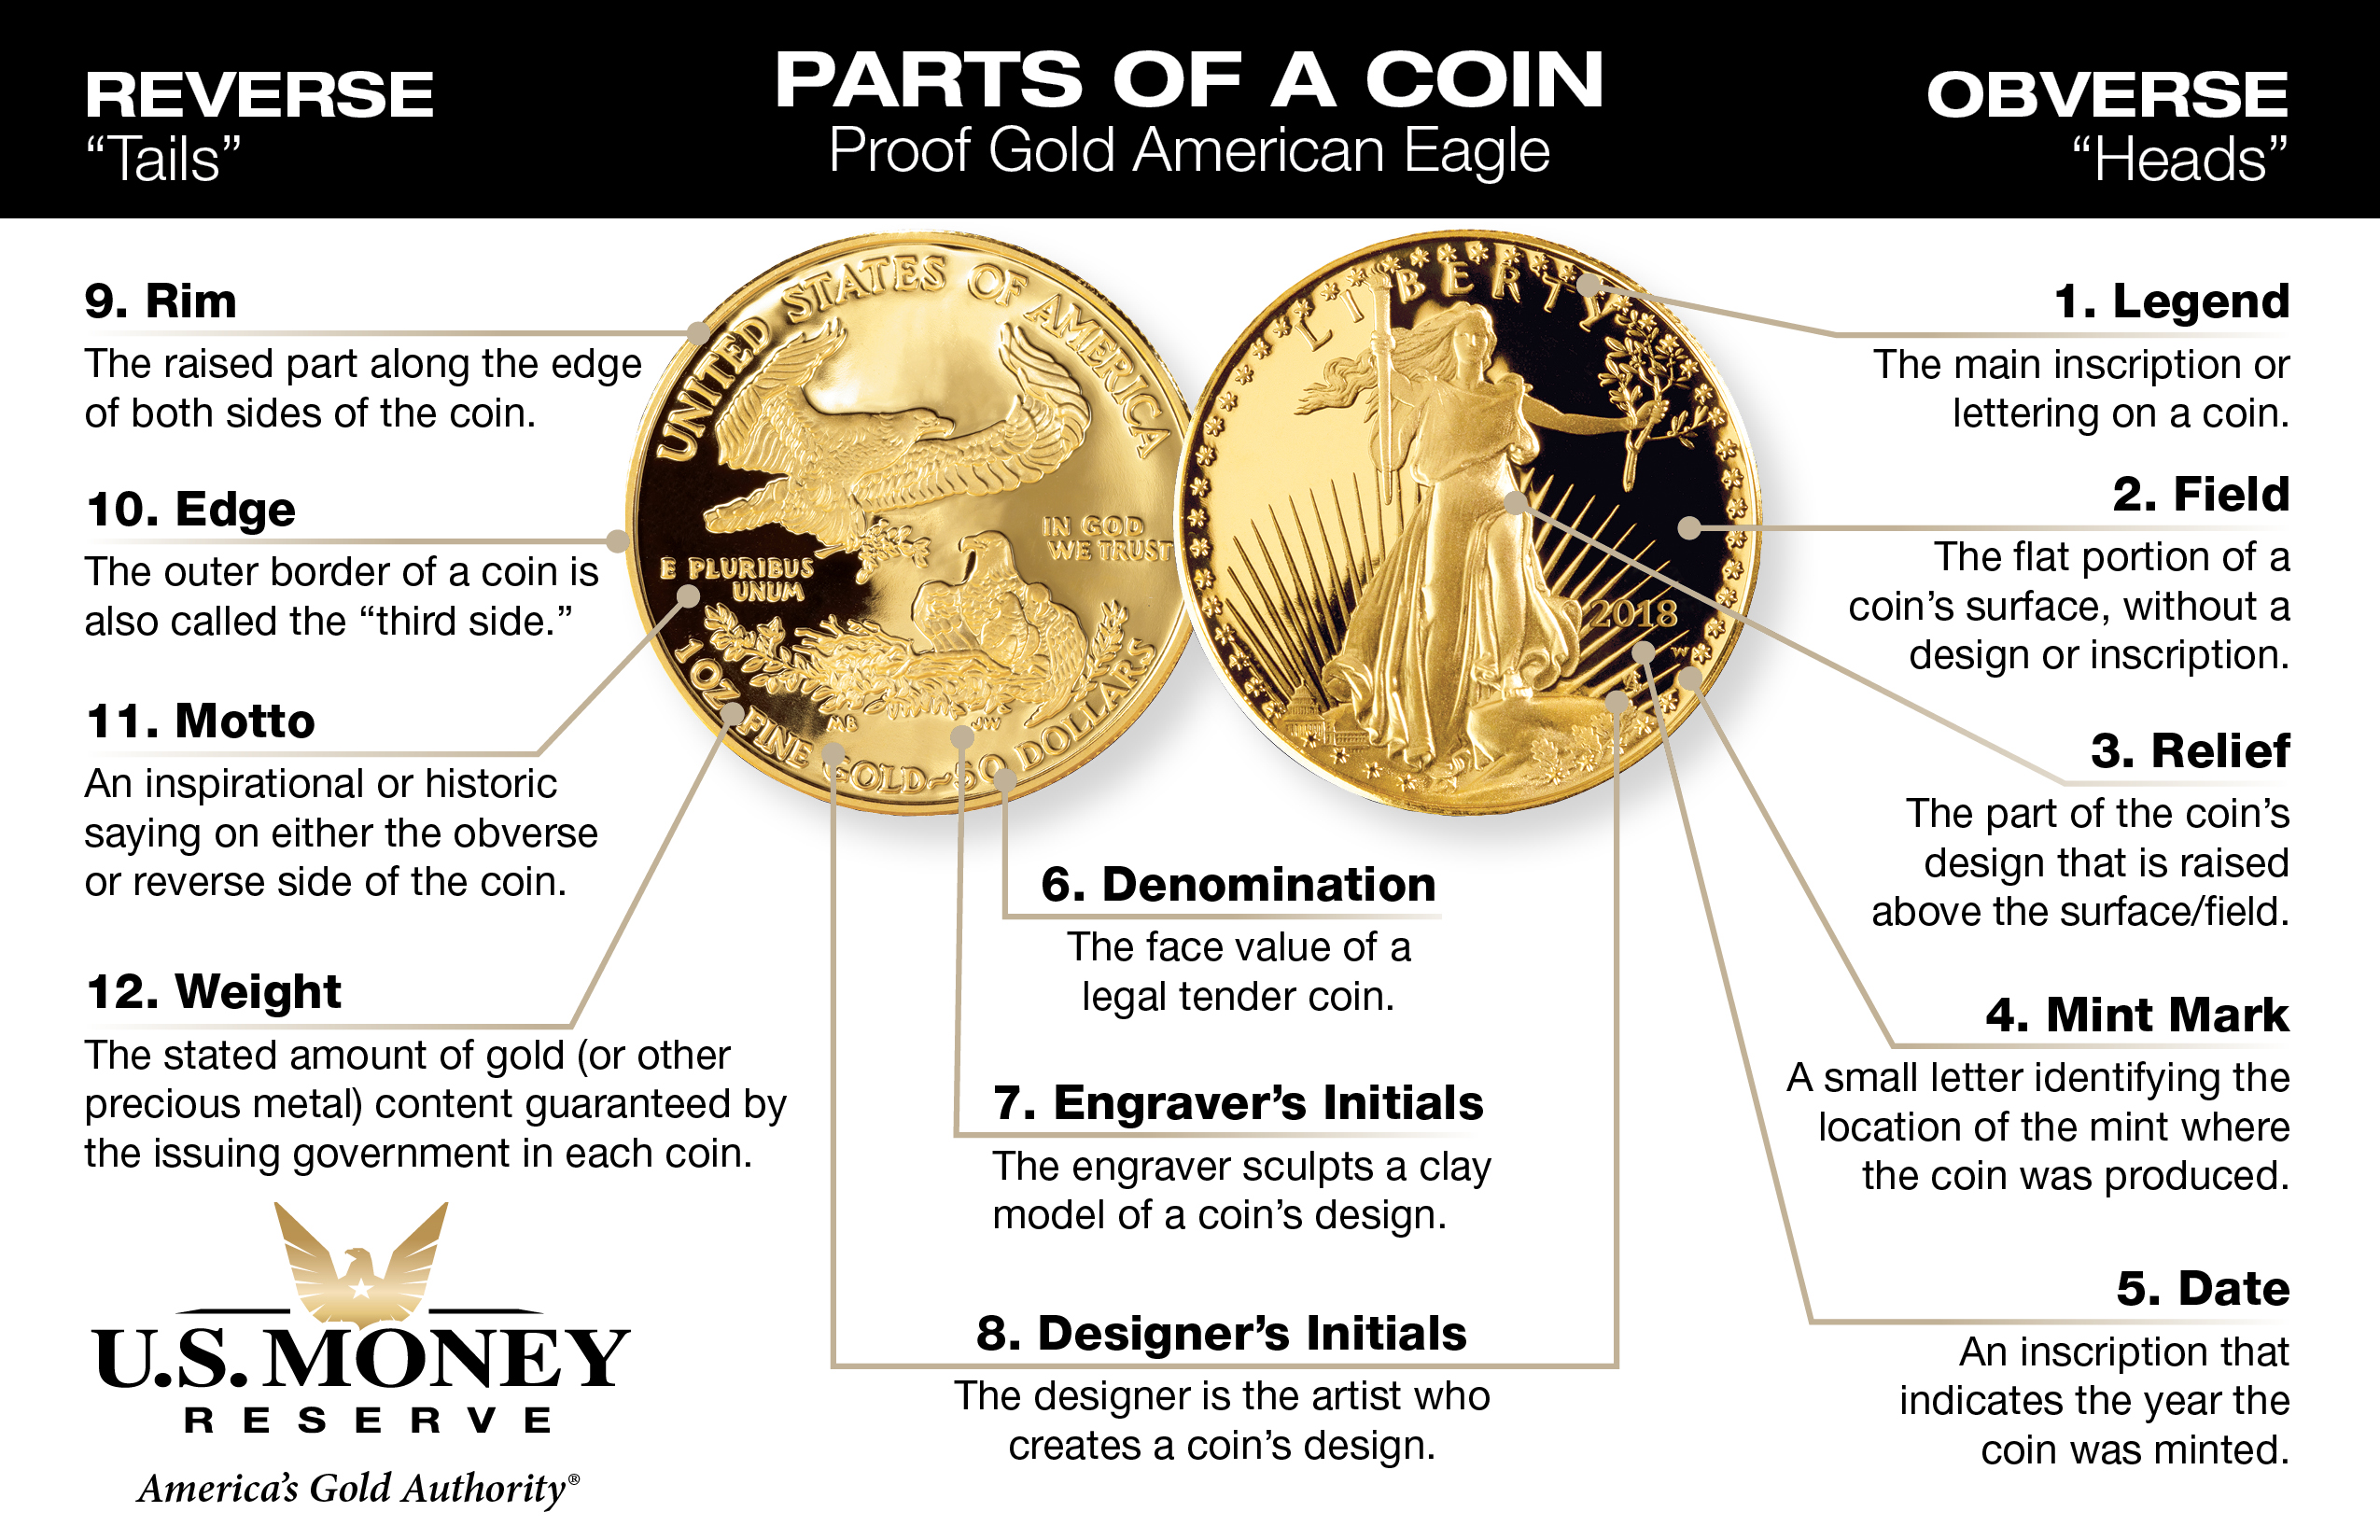 Parts of a Coin Proof Gold American Eagle Infographic